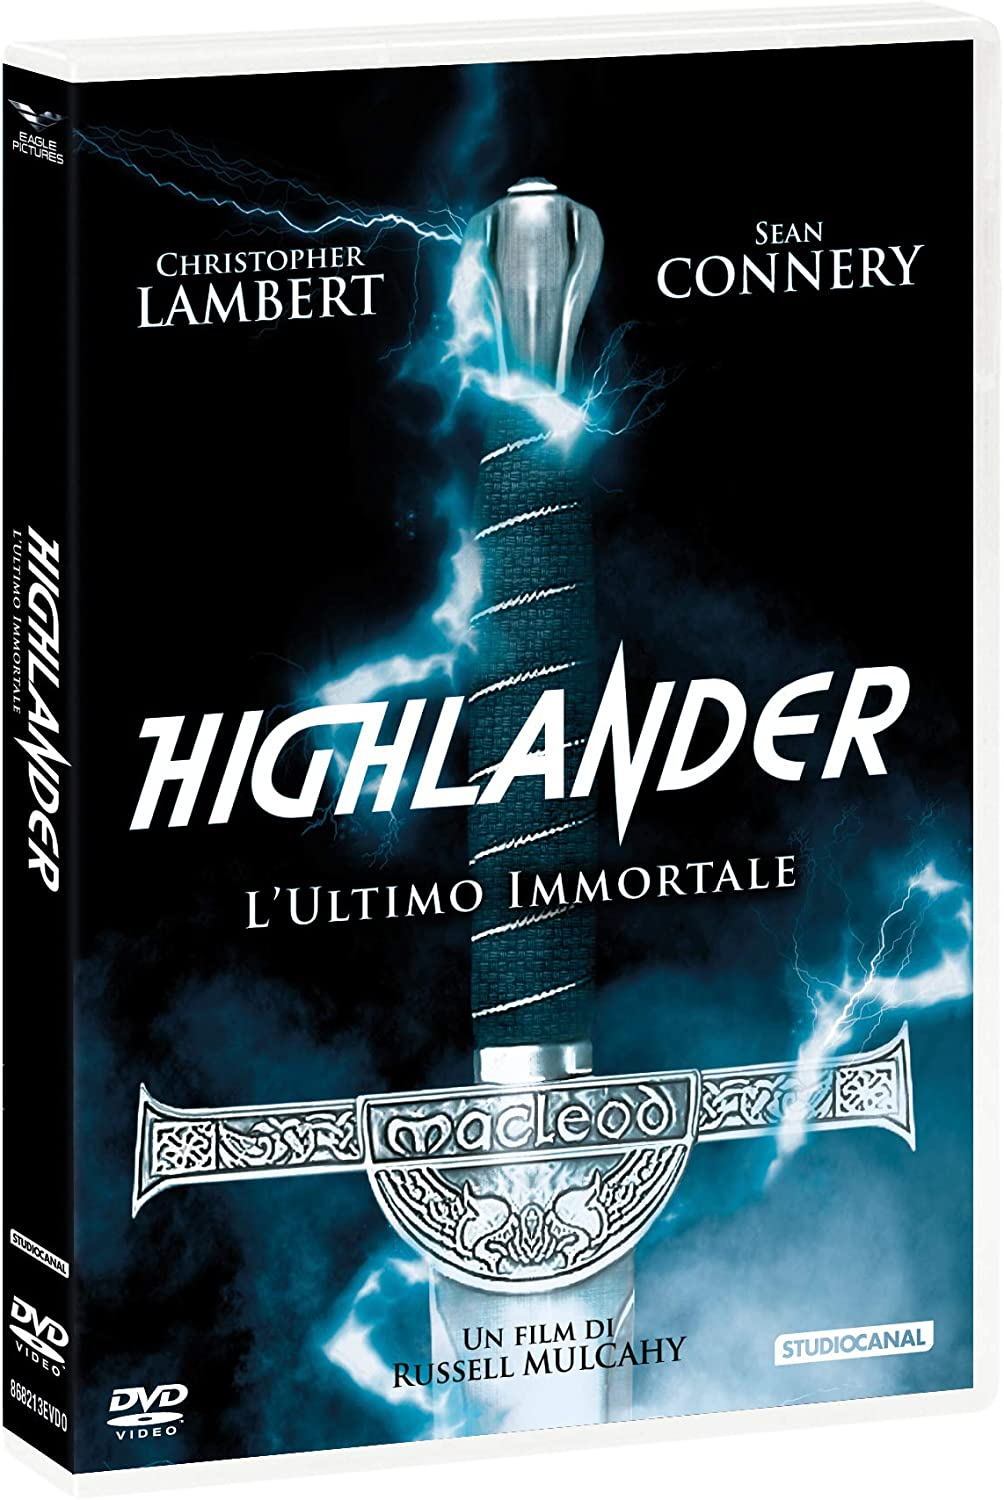 Highlander   L'Ultimo Immortale Dvd+Calendario 2021: Amazon.co.uk